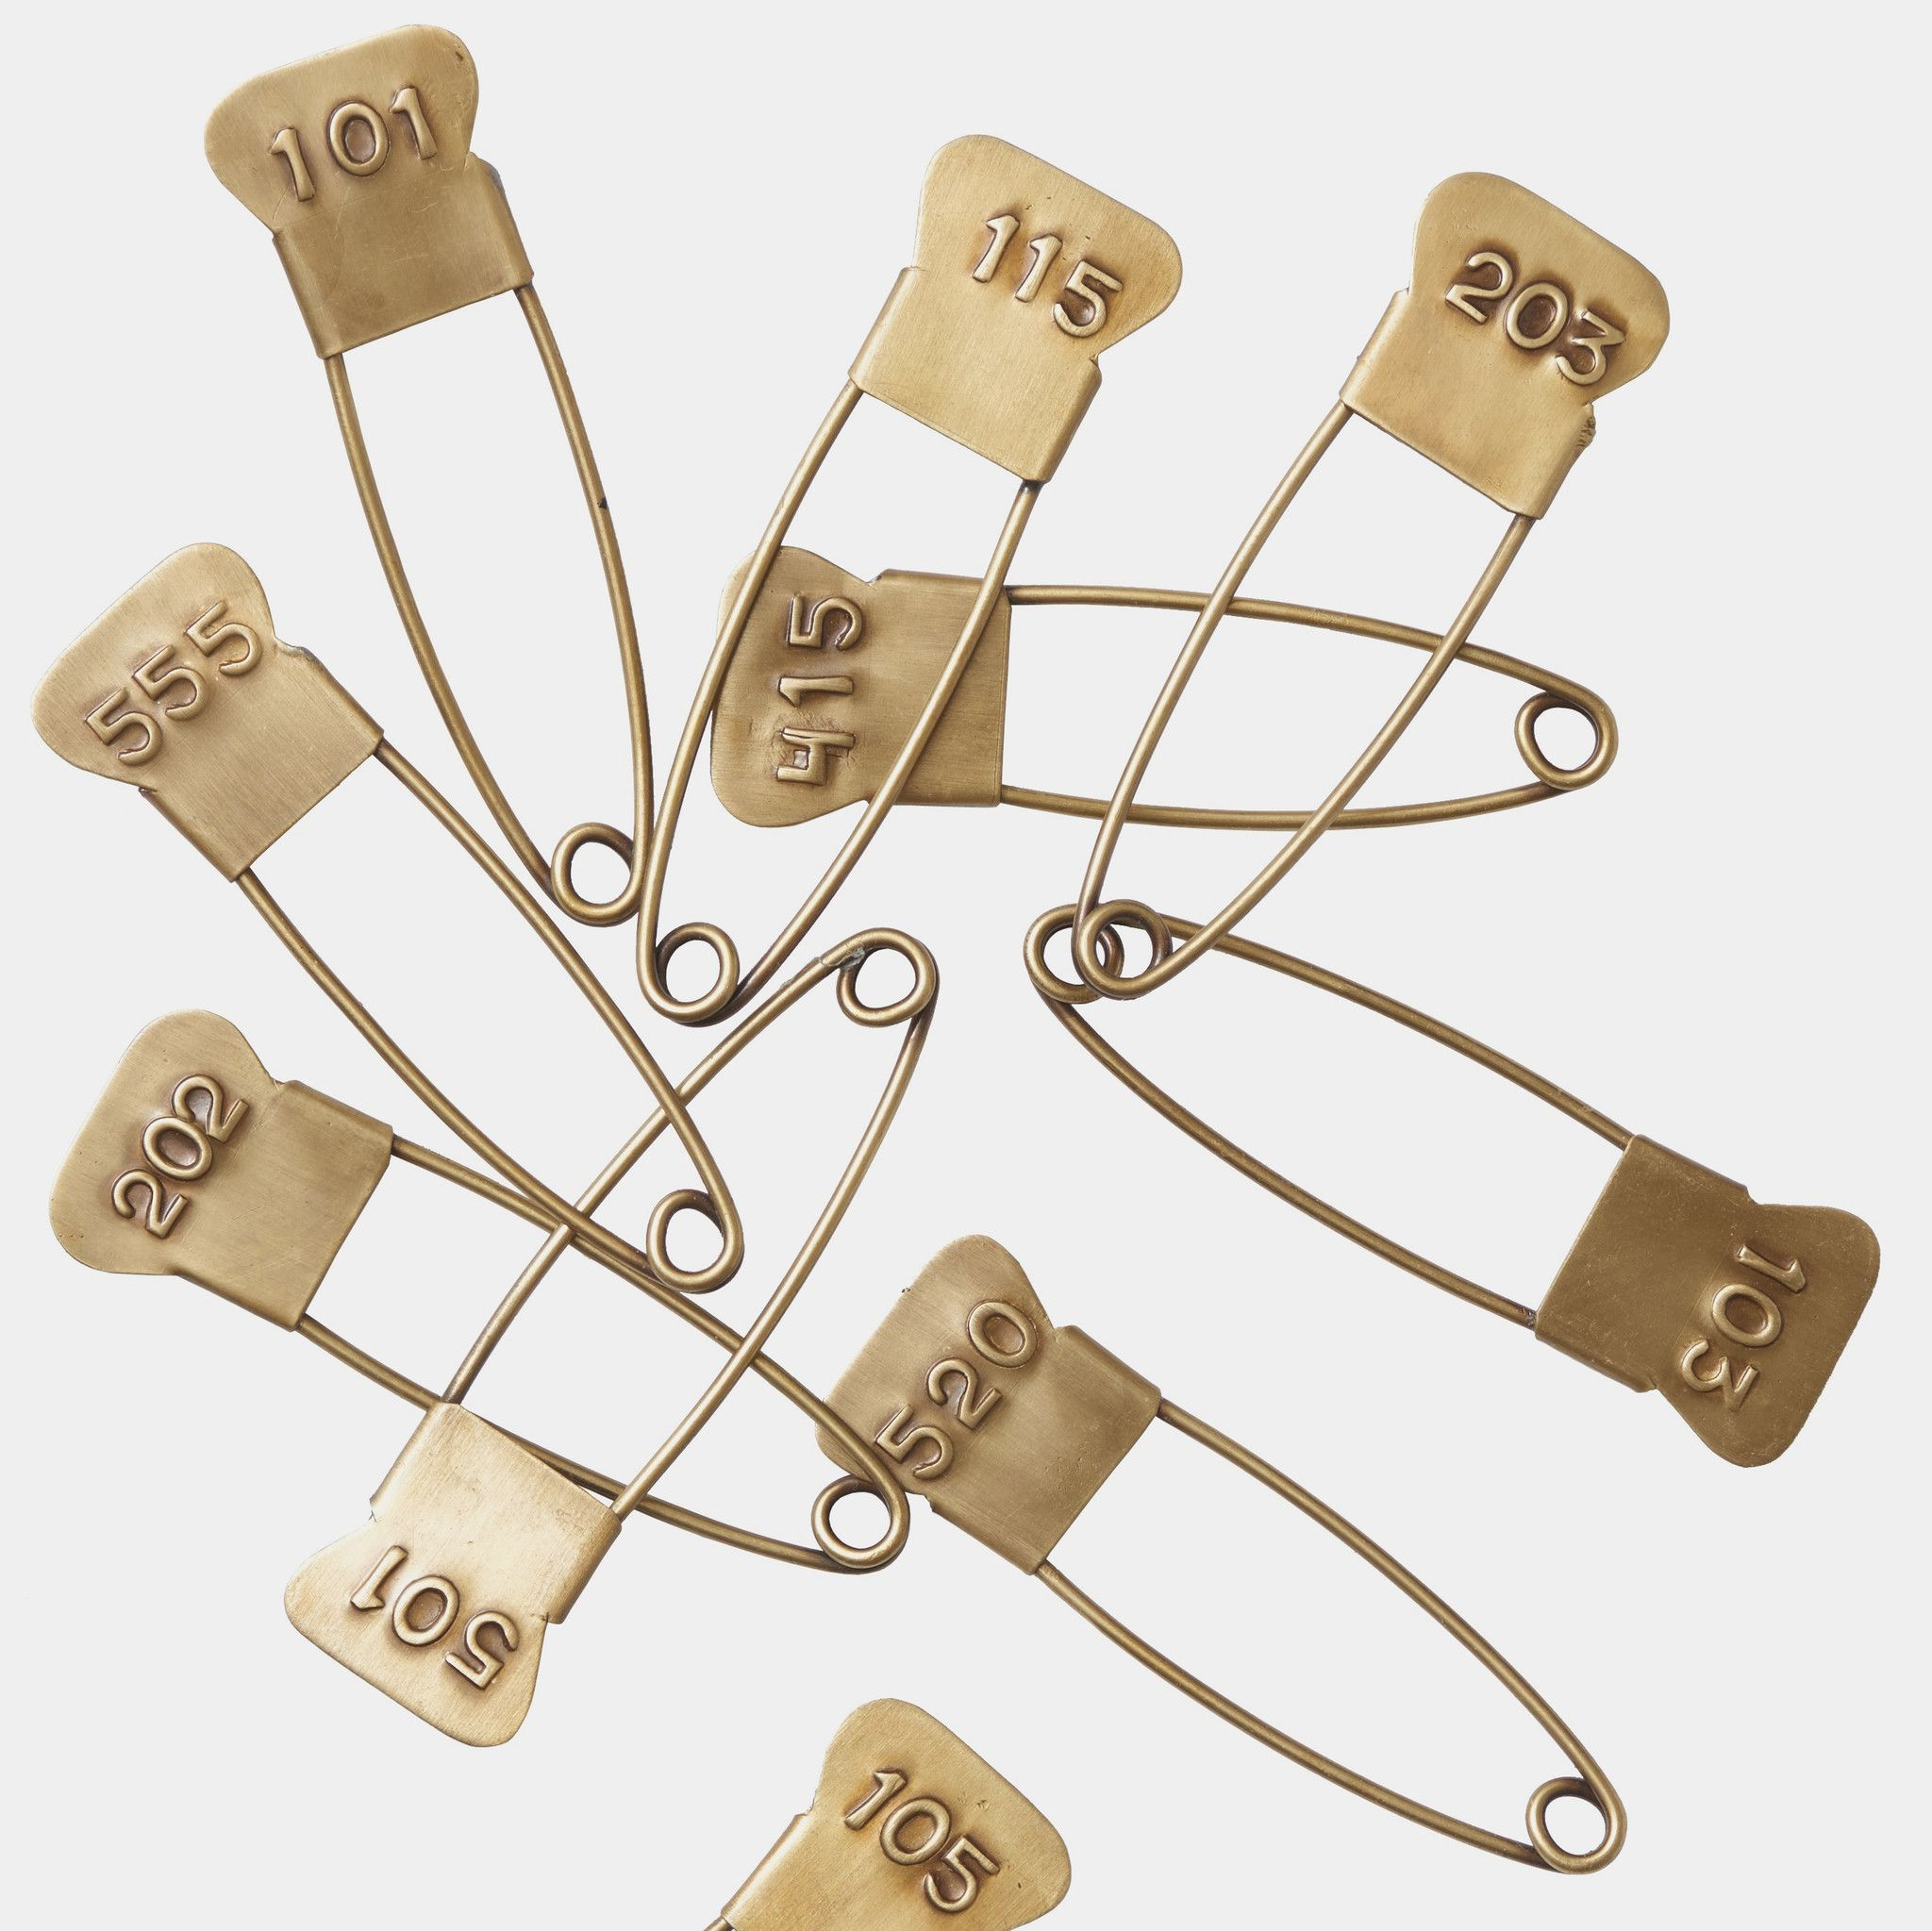 Brass Pin with Assorted Numbers Safety pin art, Urban